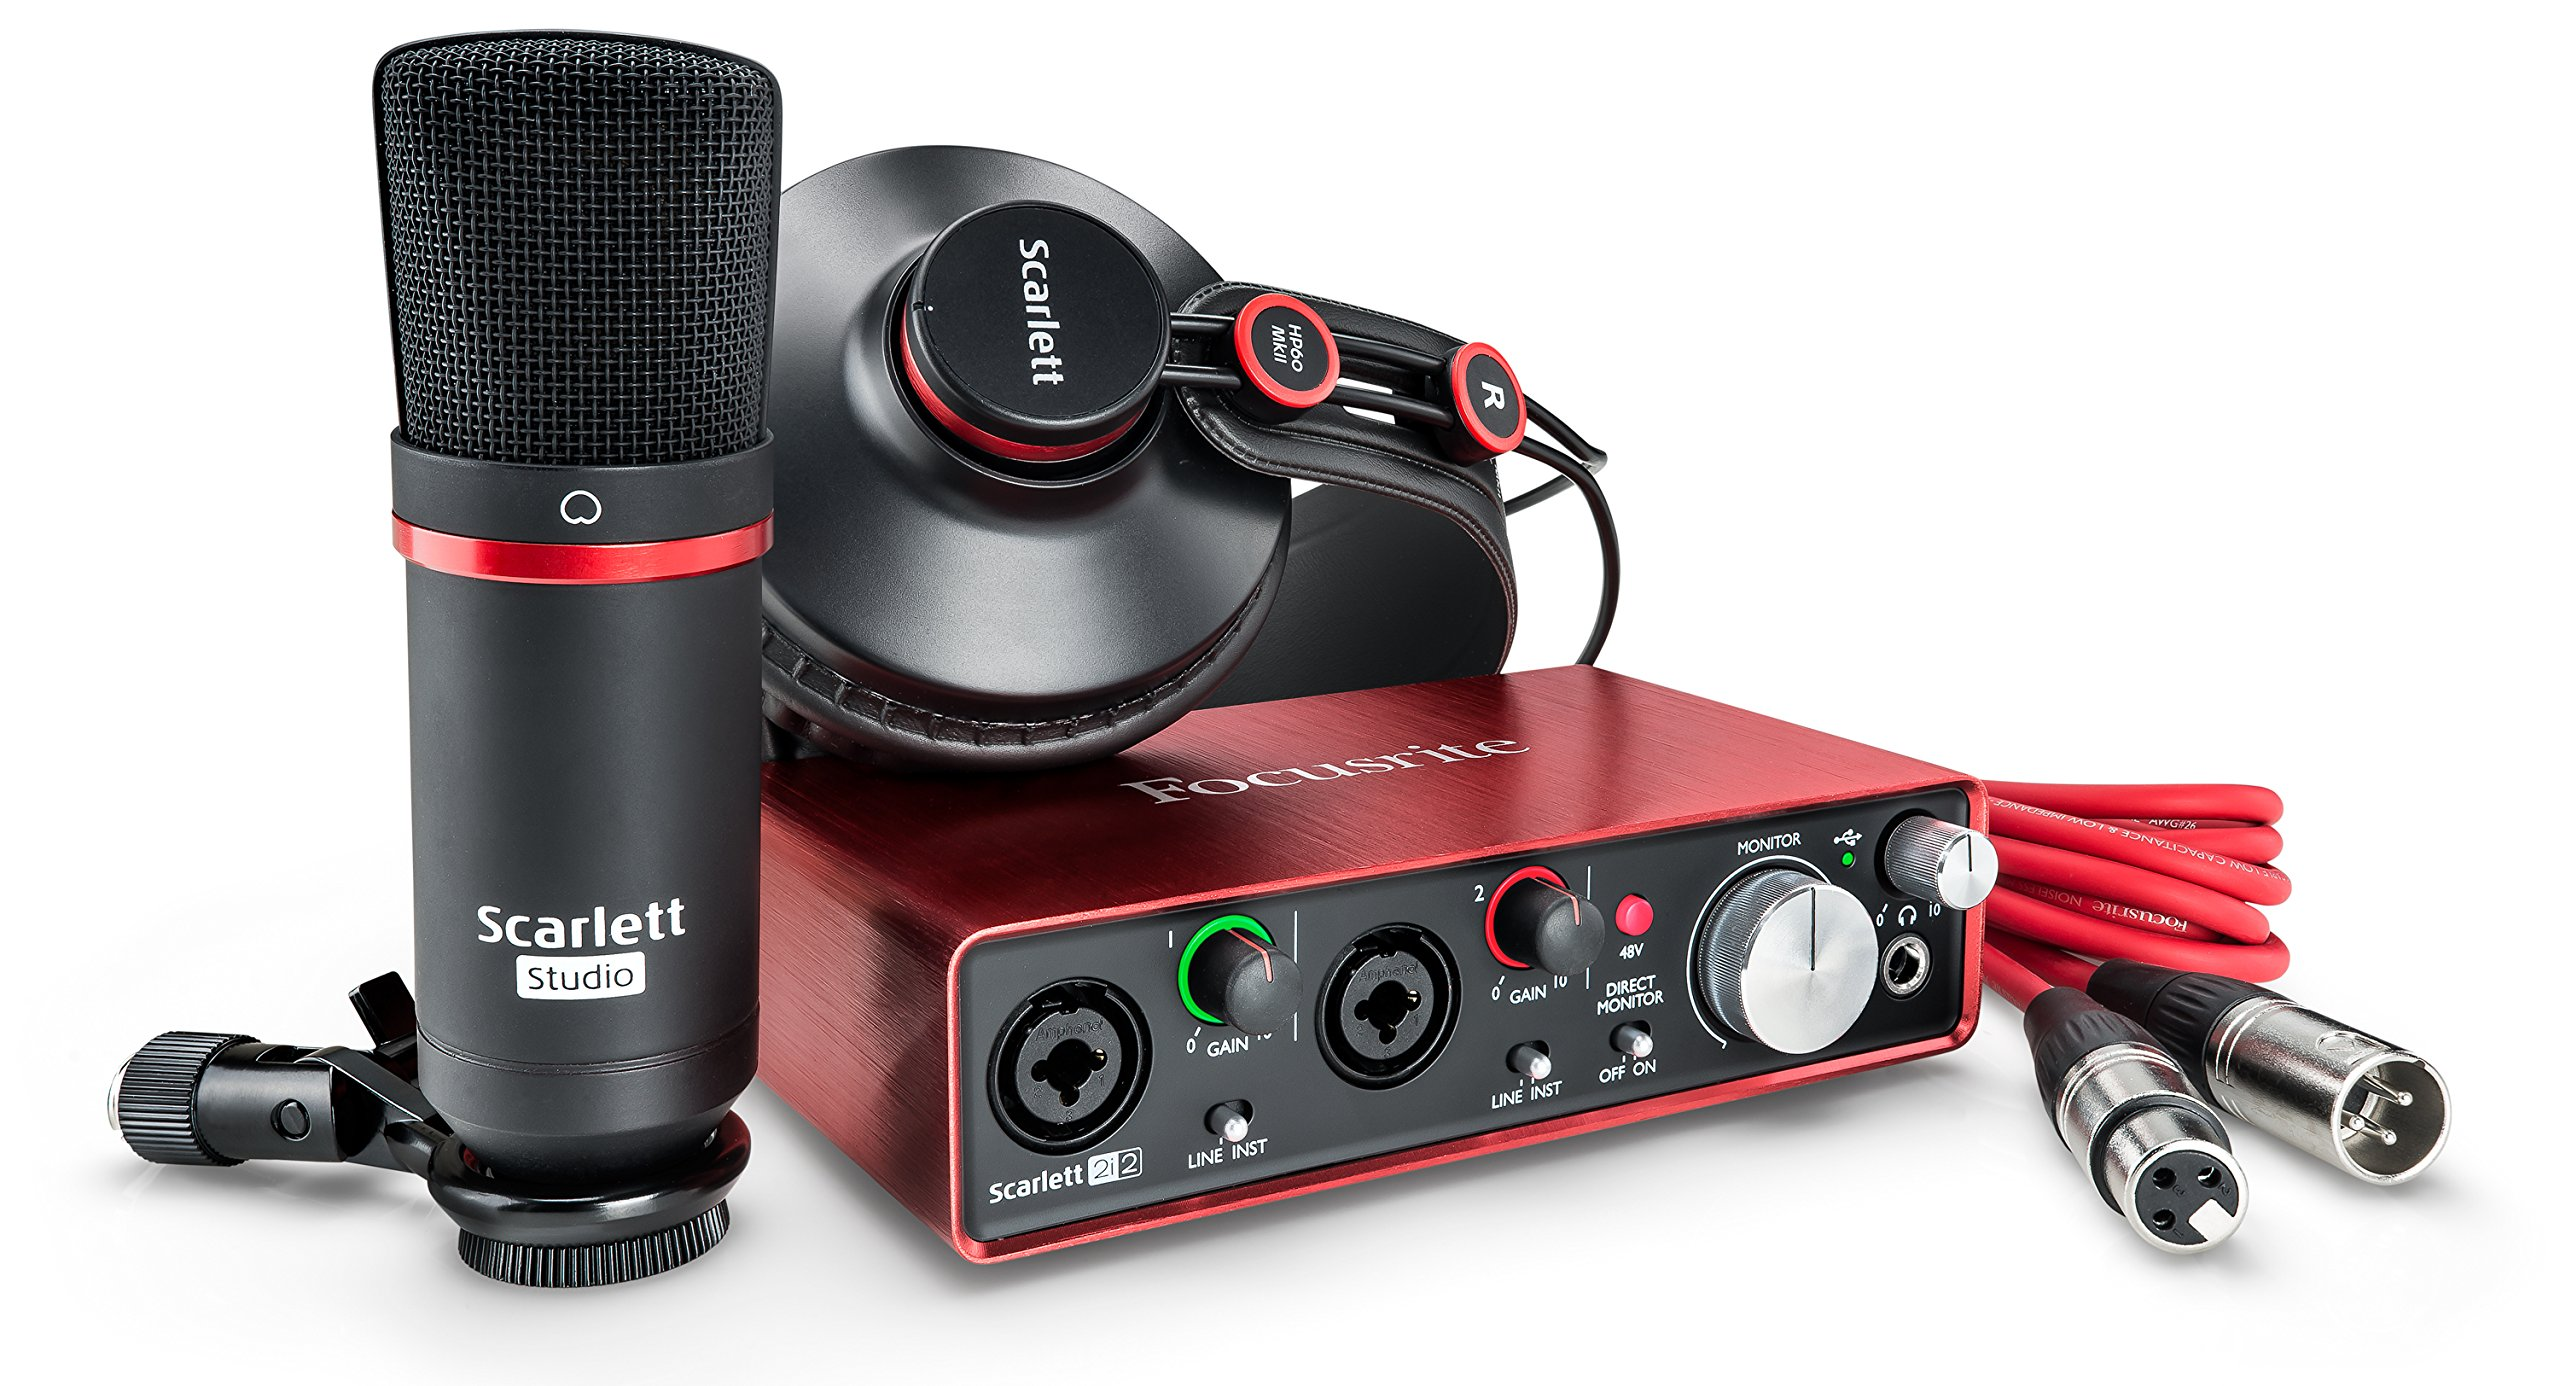 Focusrite Scarlett 2i2 Studio (2nd Gen) USB Audio Interface and Recording Bundle with Pro Tools | First by Focusrite